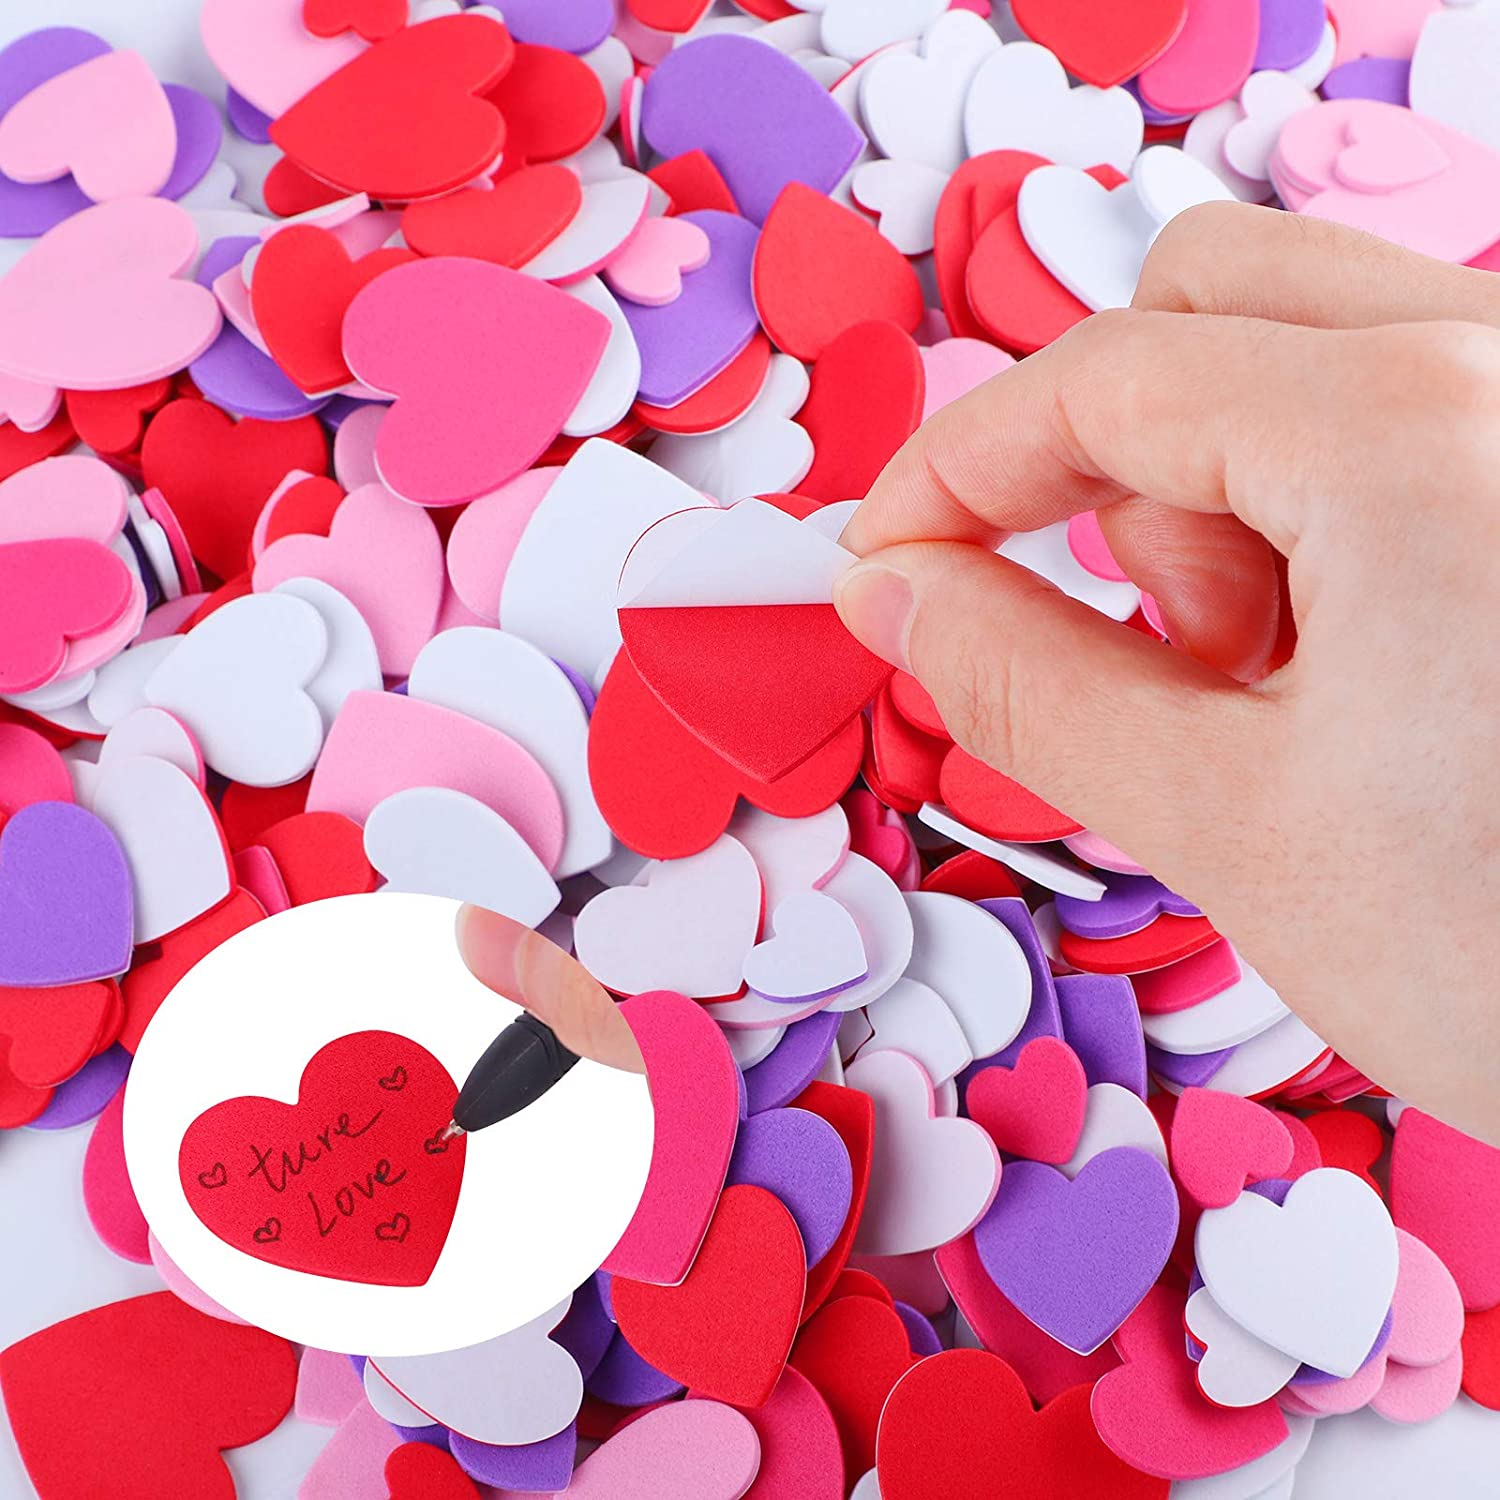 Wedding Decoration or Card Making Cooraby 600 Pieces Heart Foam Stickers Self-Adhesive Heart Shapes Craft Stickers for Valentines Day